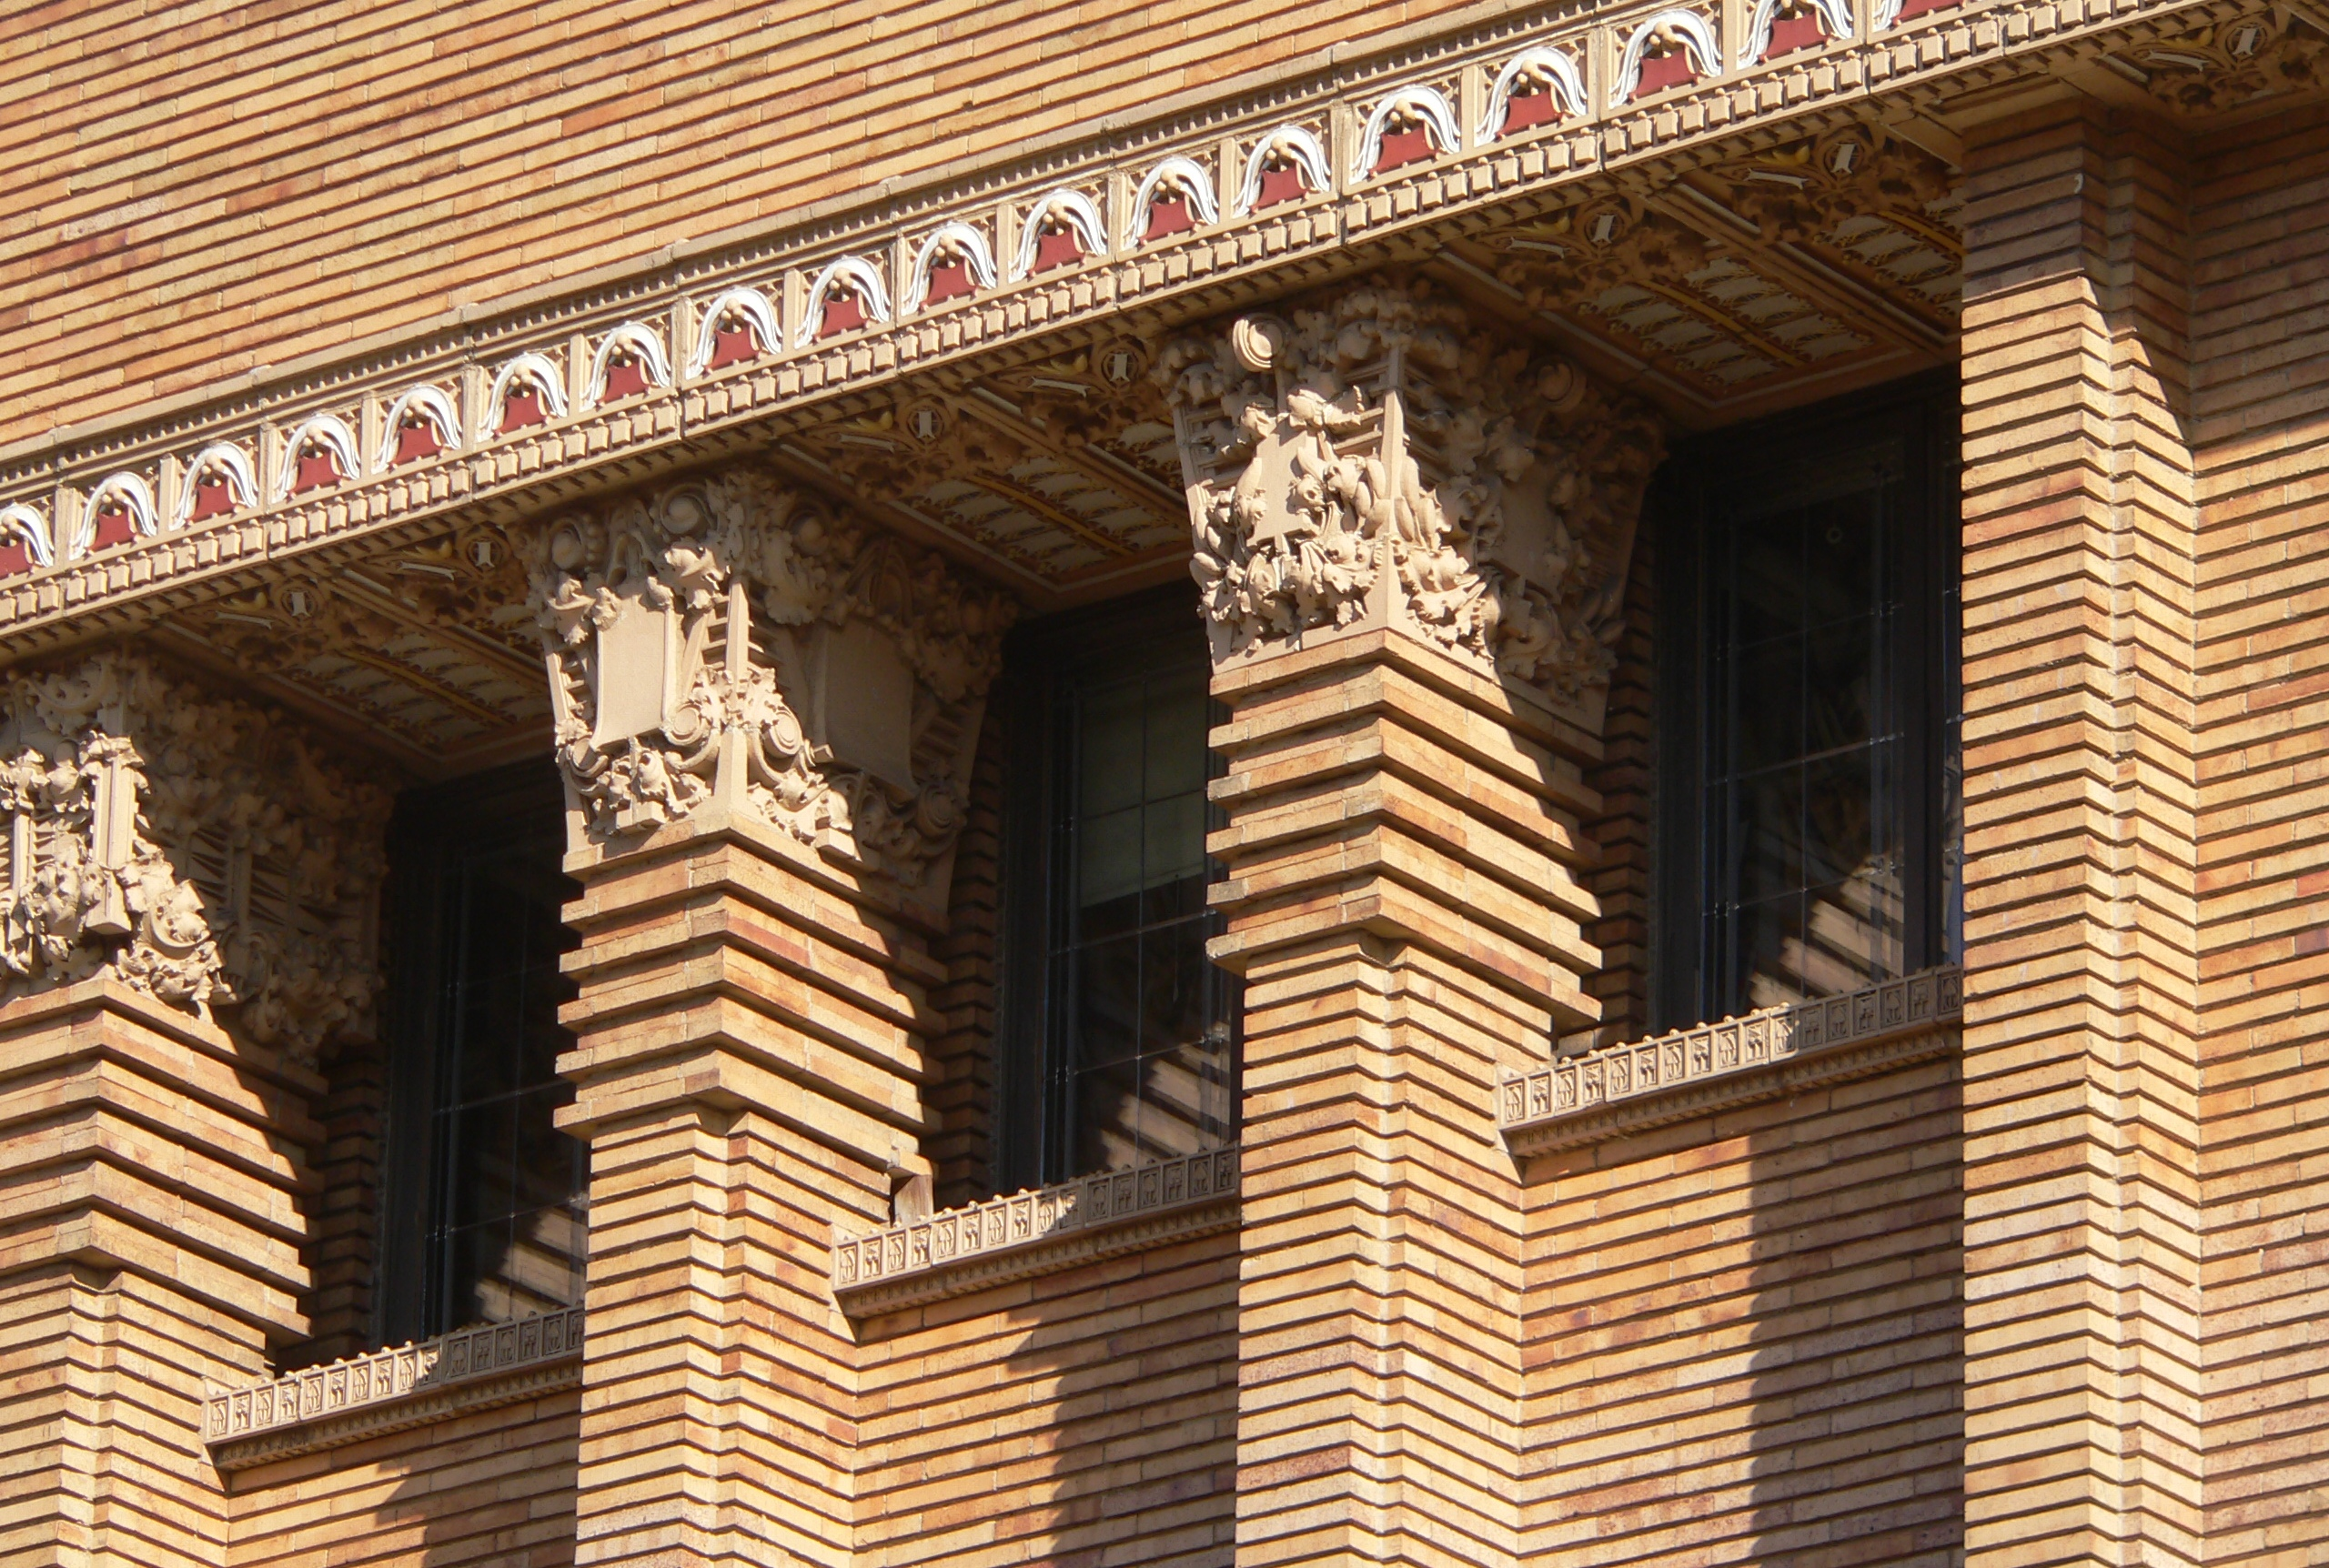 File:Woodbury County Courthouse W pilasters 1.JPG - Wikimedia Commons